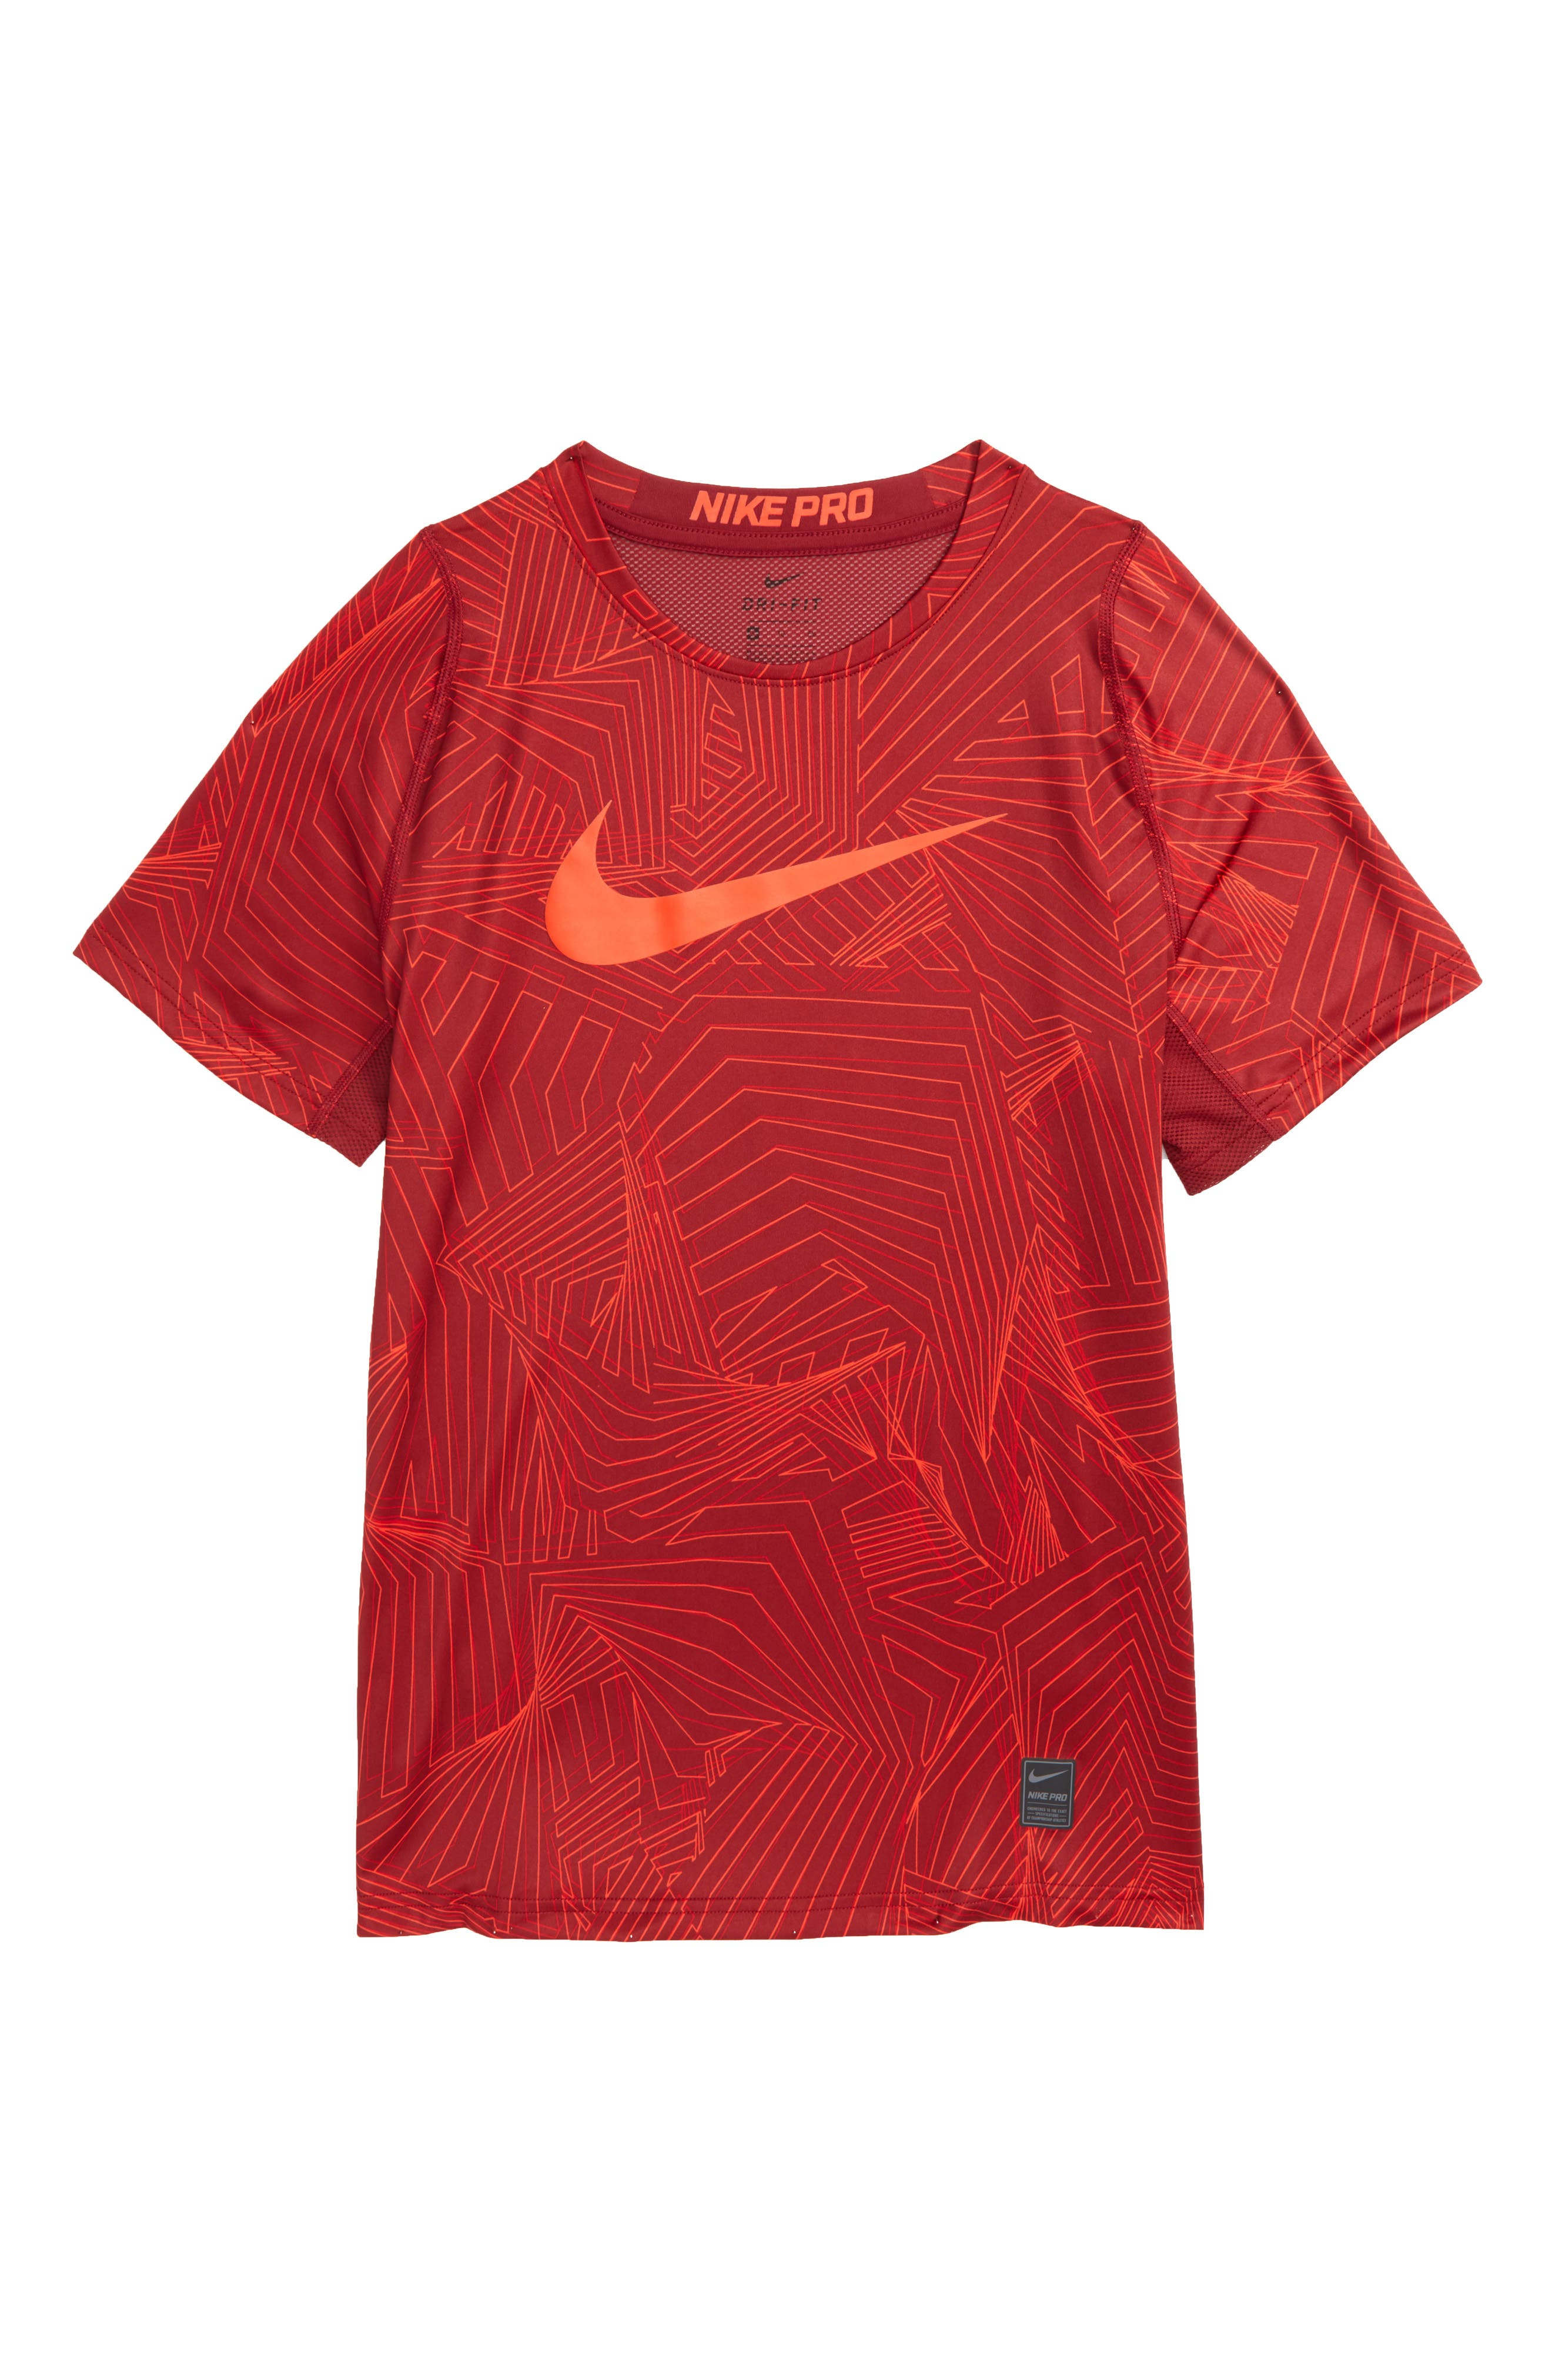 Pro Fitted Training Shirt,                         Main,                         color, Team Red